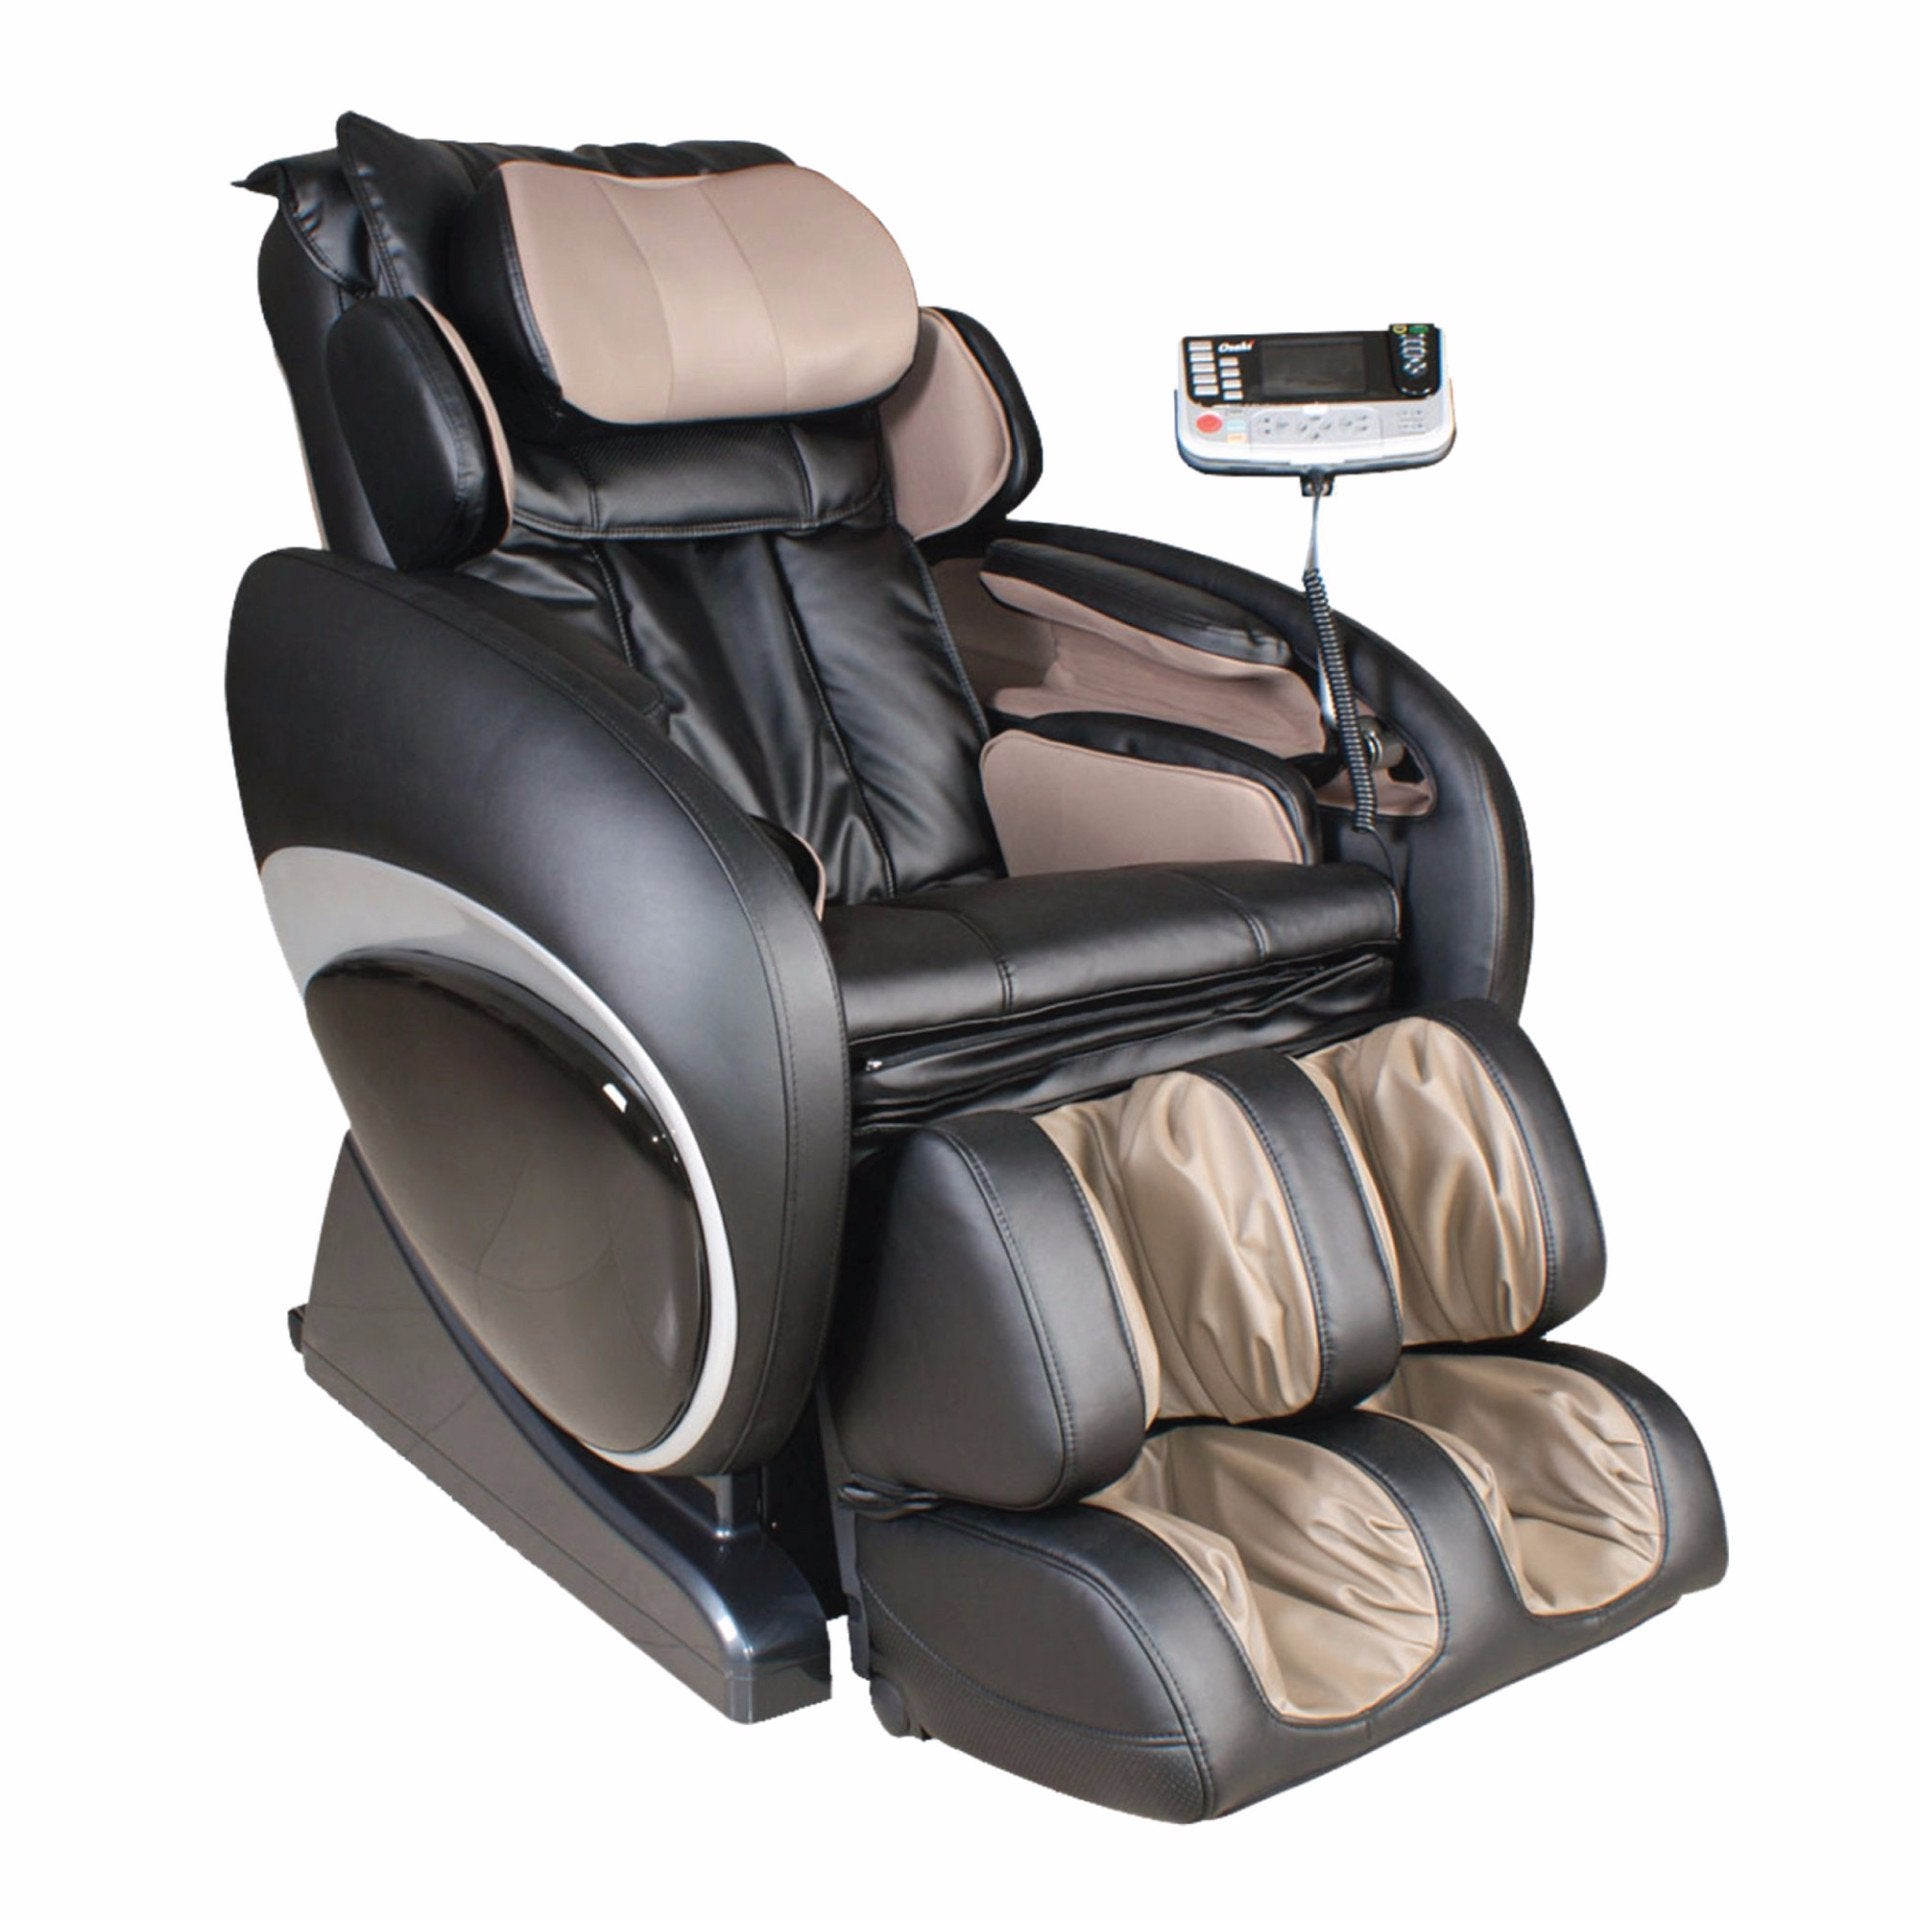 Infinity Escape Massage Chair MassageChairsGiveBack